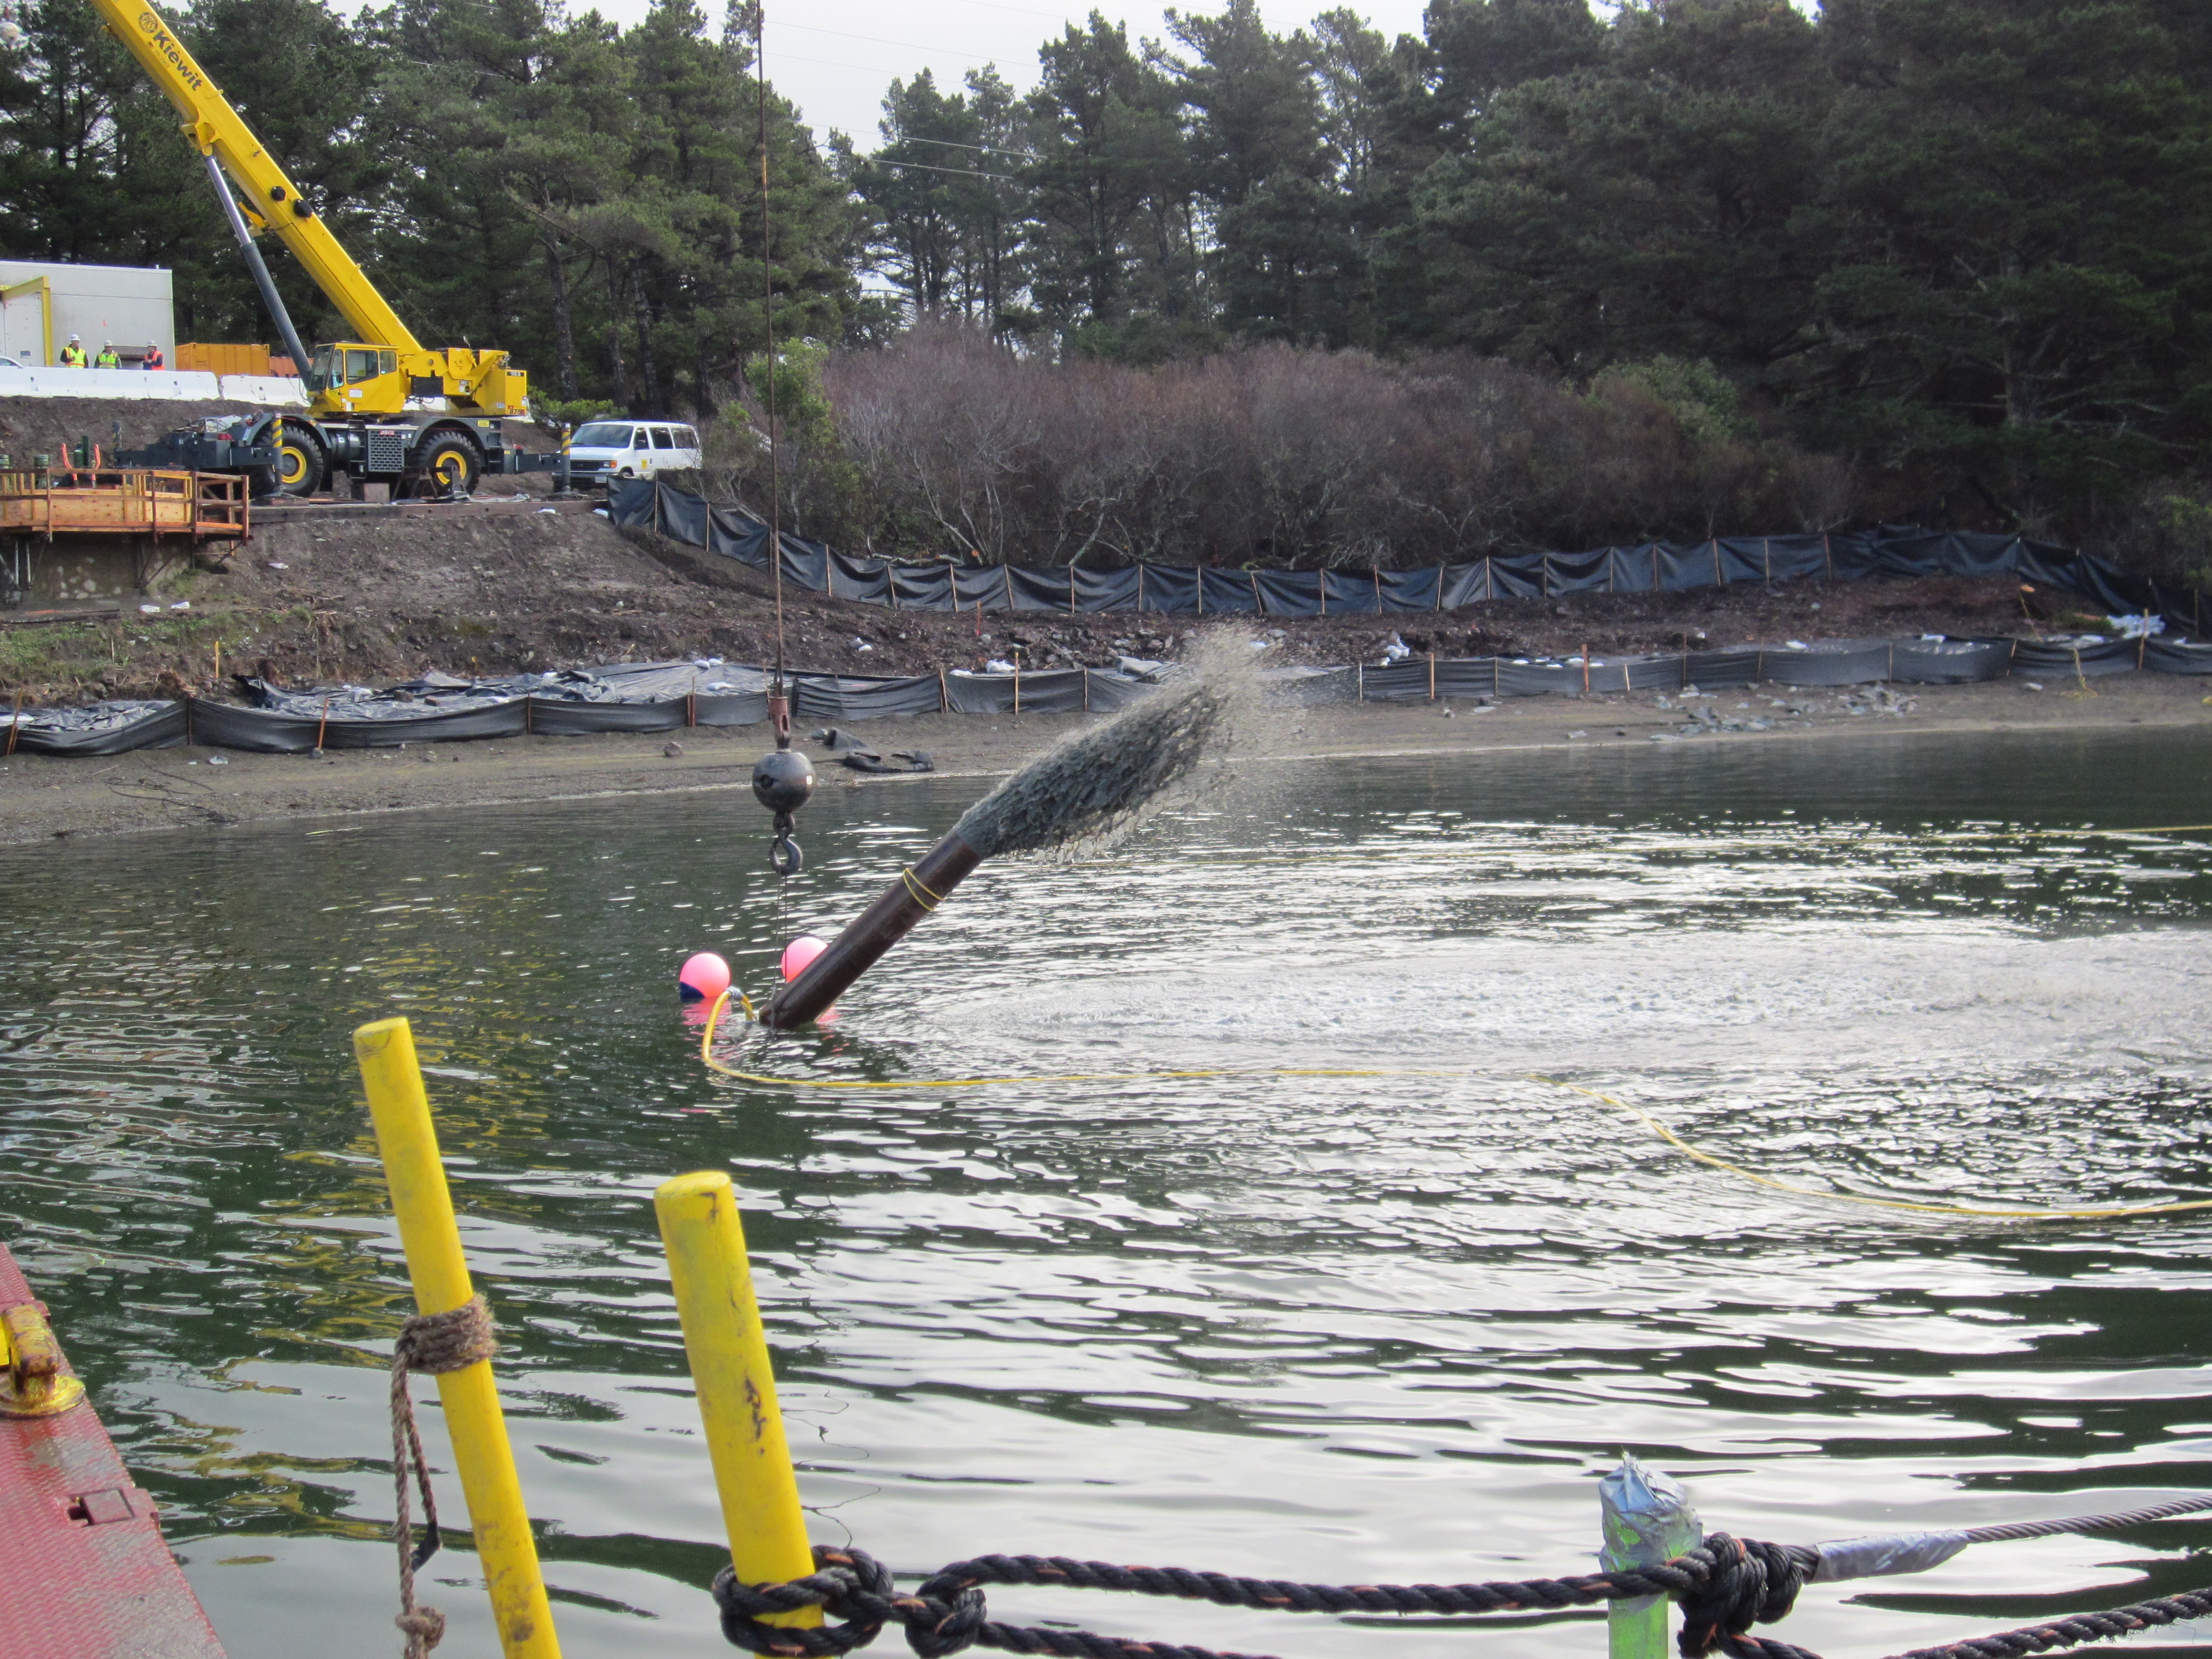 Dredging, Jetting, & Airlifting